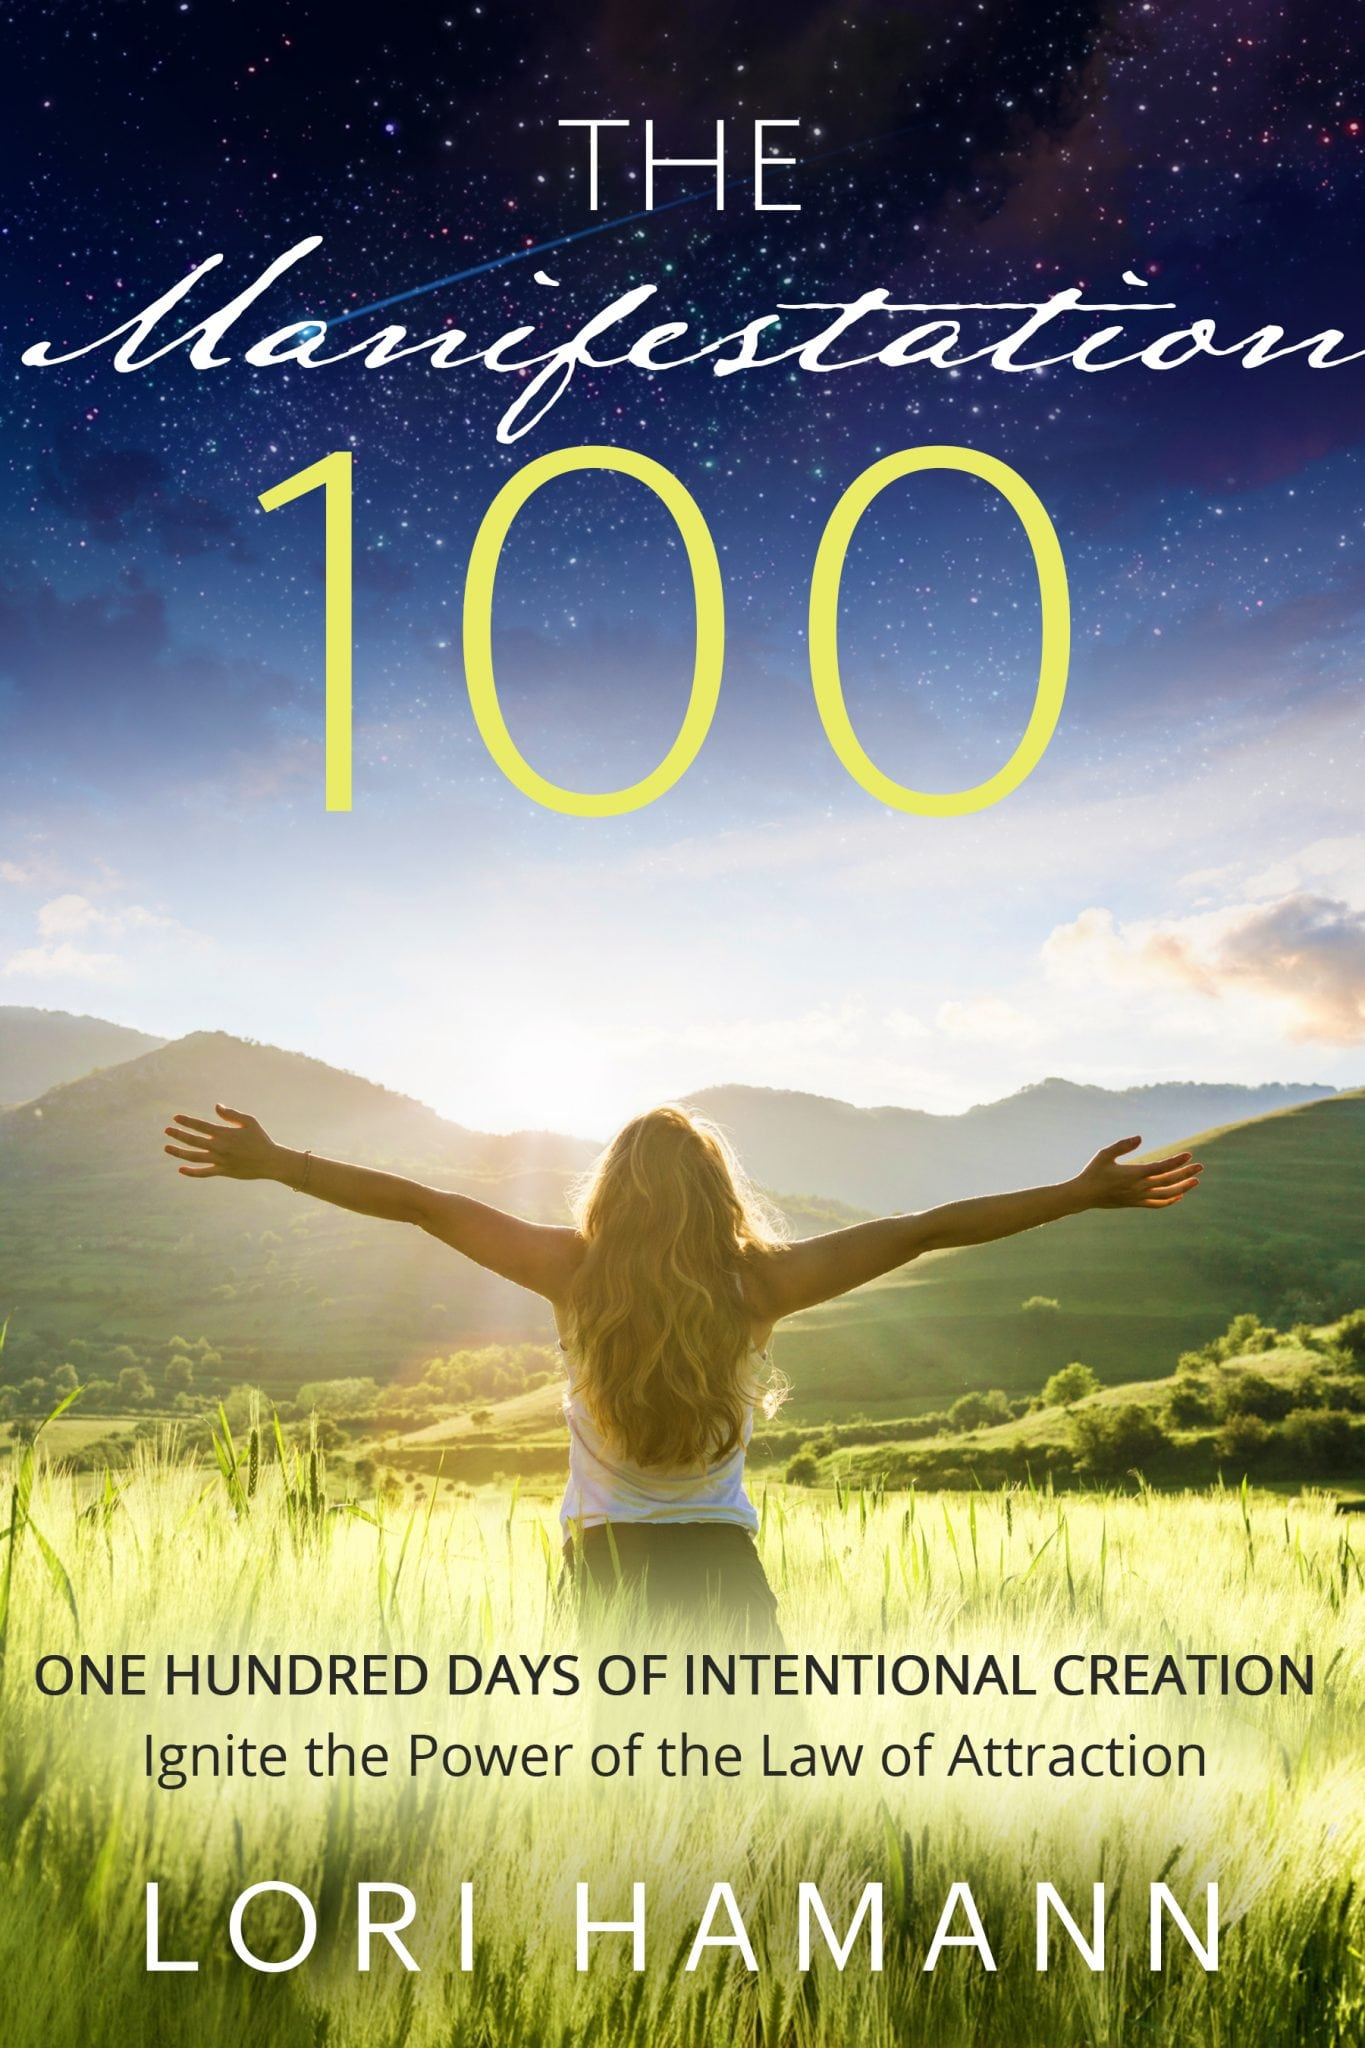 the manifestation 100 group  :)  100 days of intentional creation